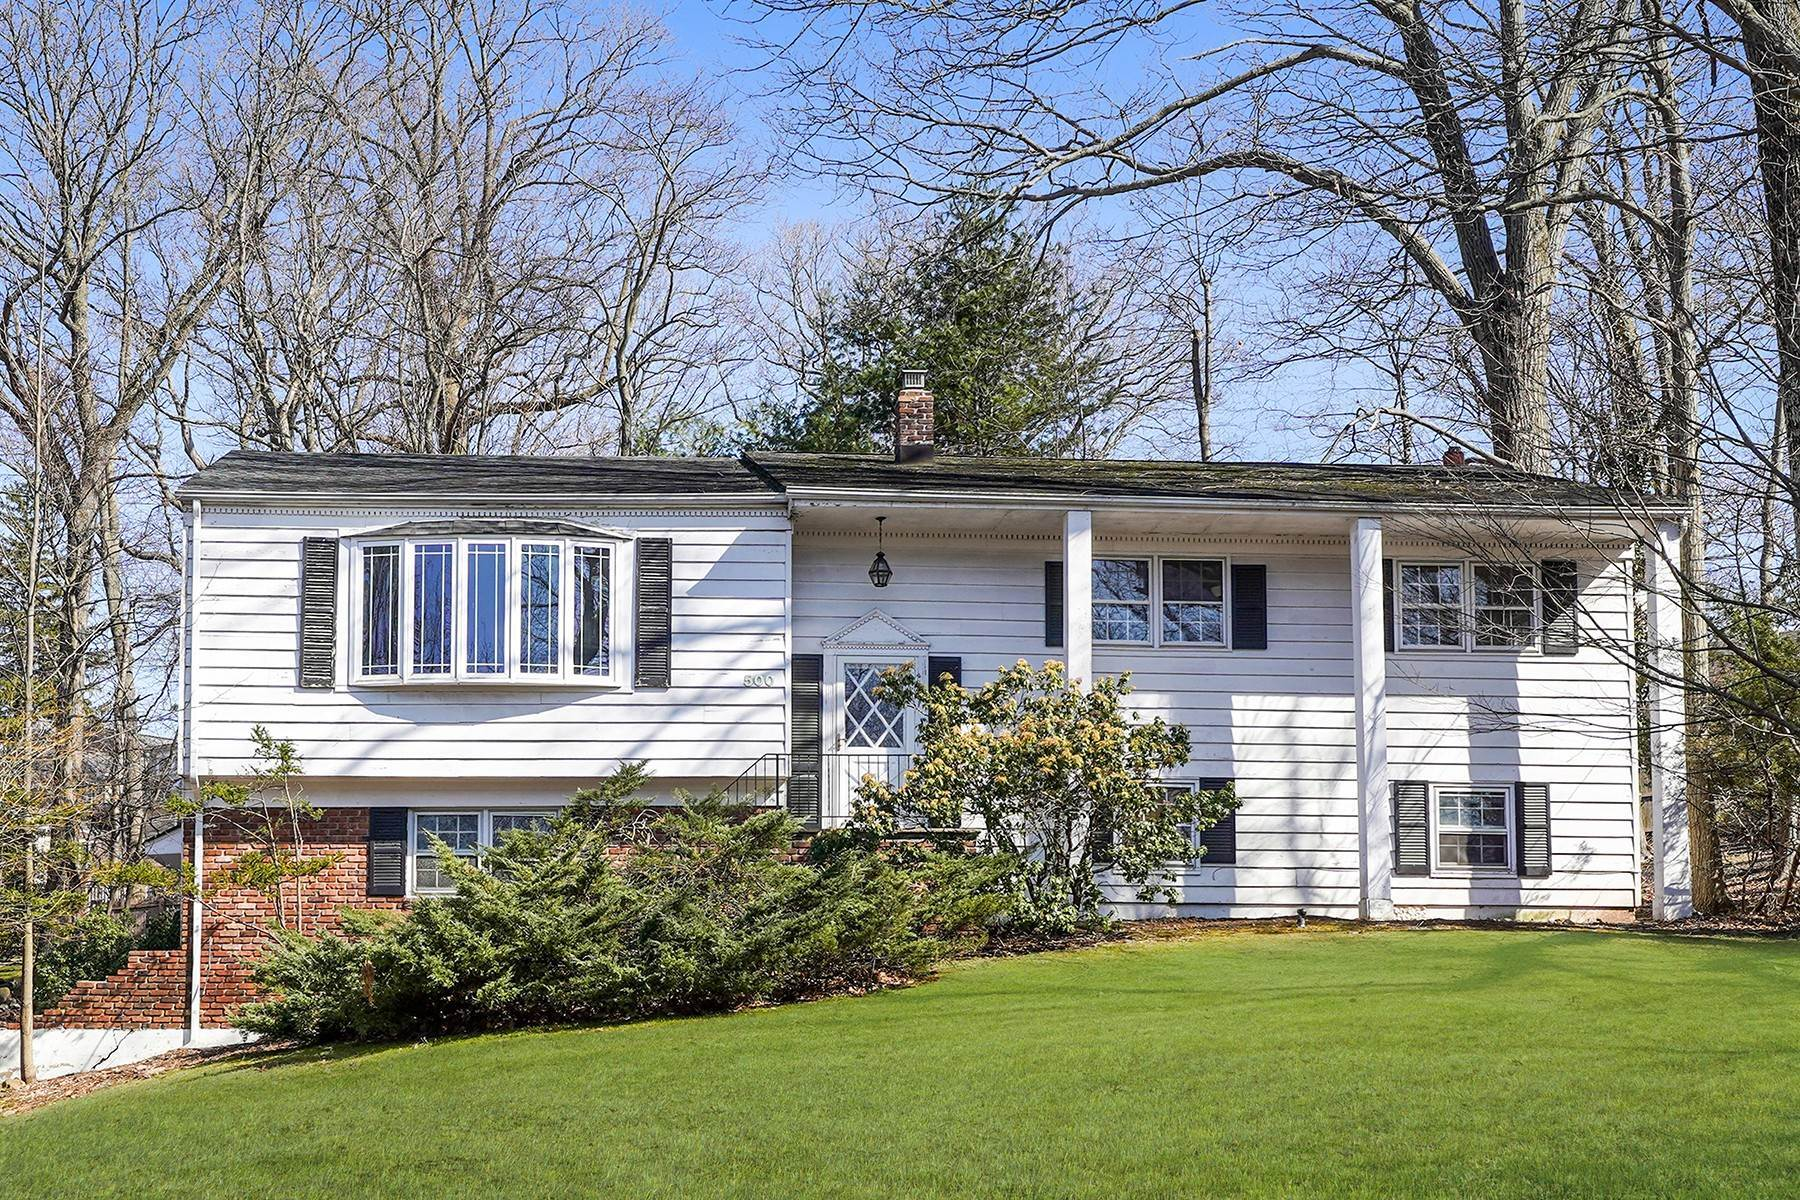 Single Family Homes for Sale at Classically Styled Raised Ranch 500 Summit Road Mountainside, New Jersey 07092 United States